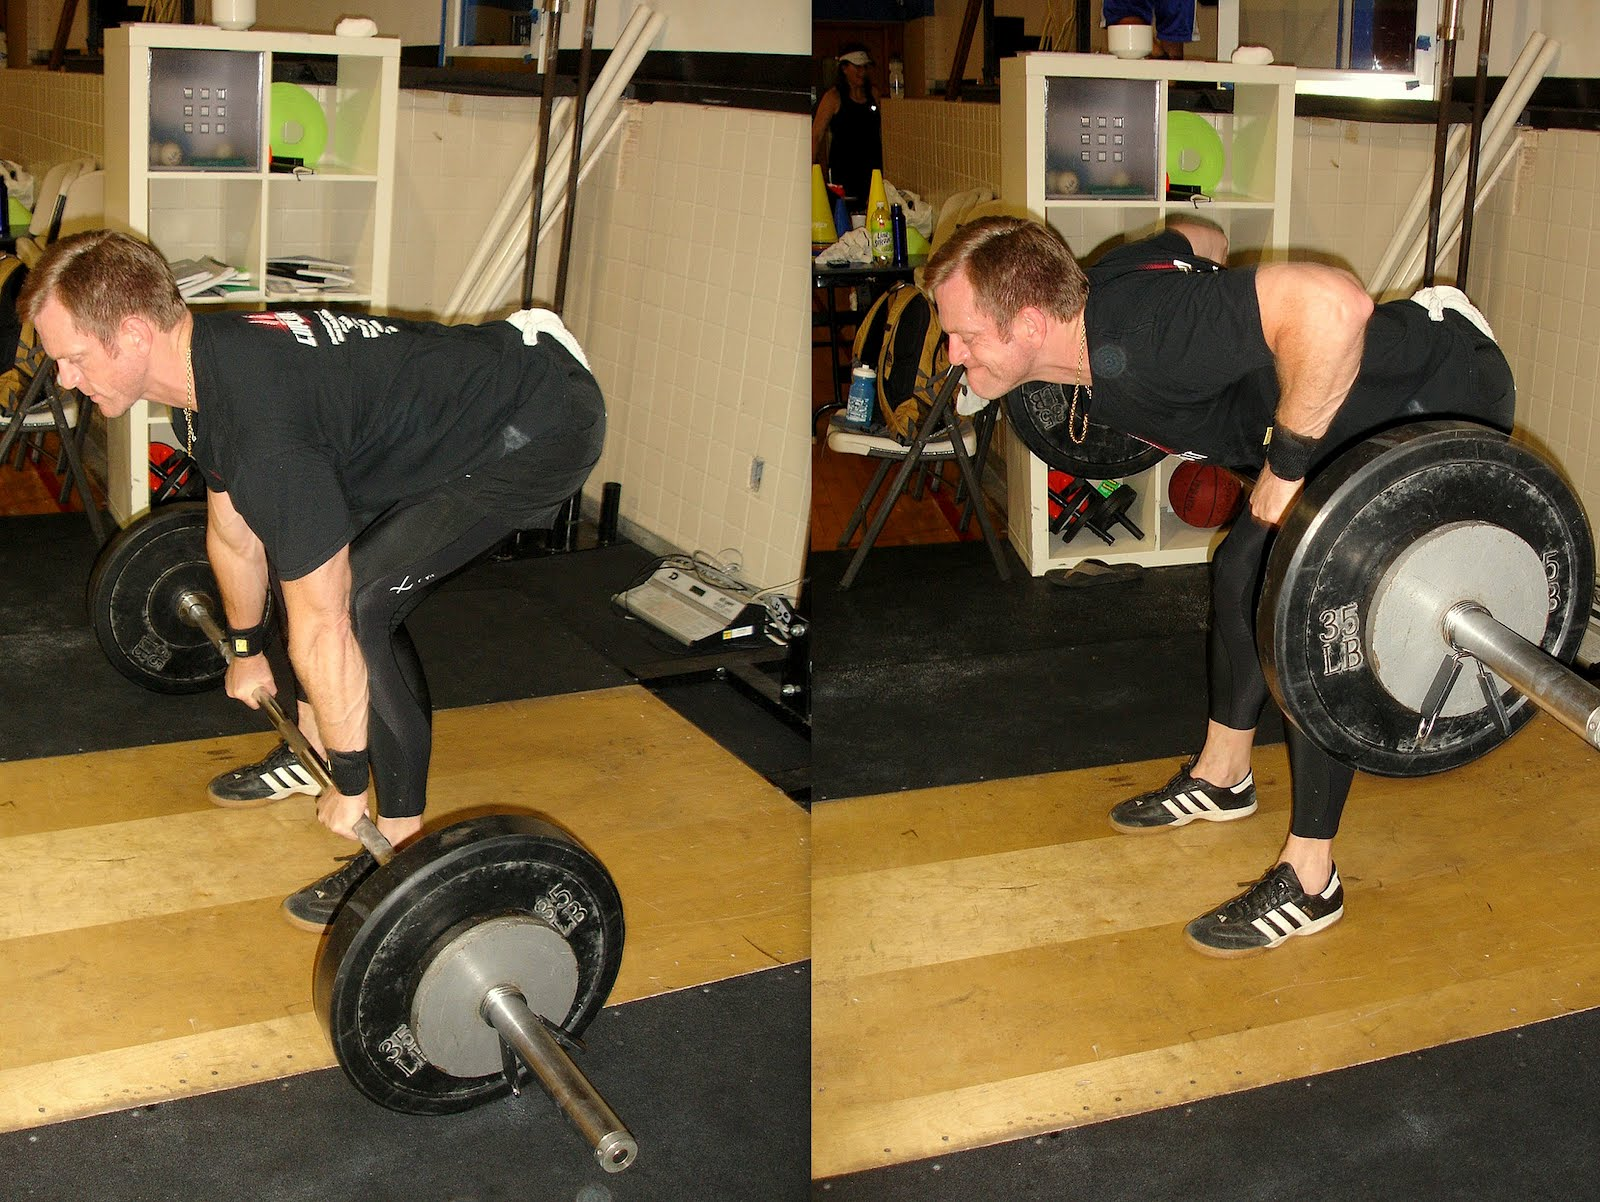 The Combo Sets Consisted Of One Set Of 5 Pendlay Rows, Followed Immediately  By A Set Of 20 DB Bench Press. Weight For The DB Bench Was Up To The  Individual, ...